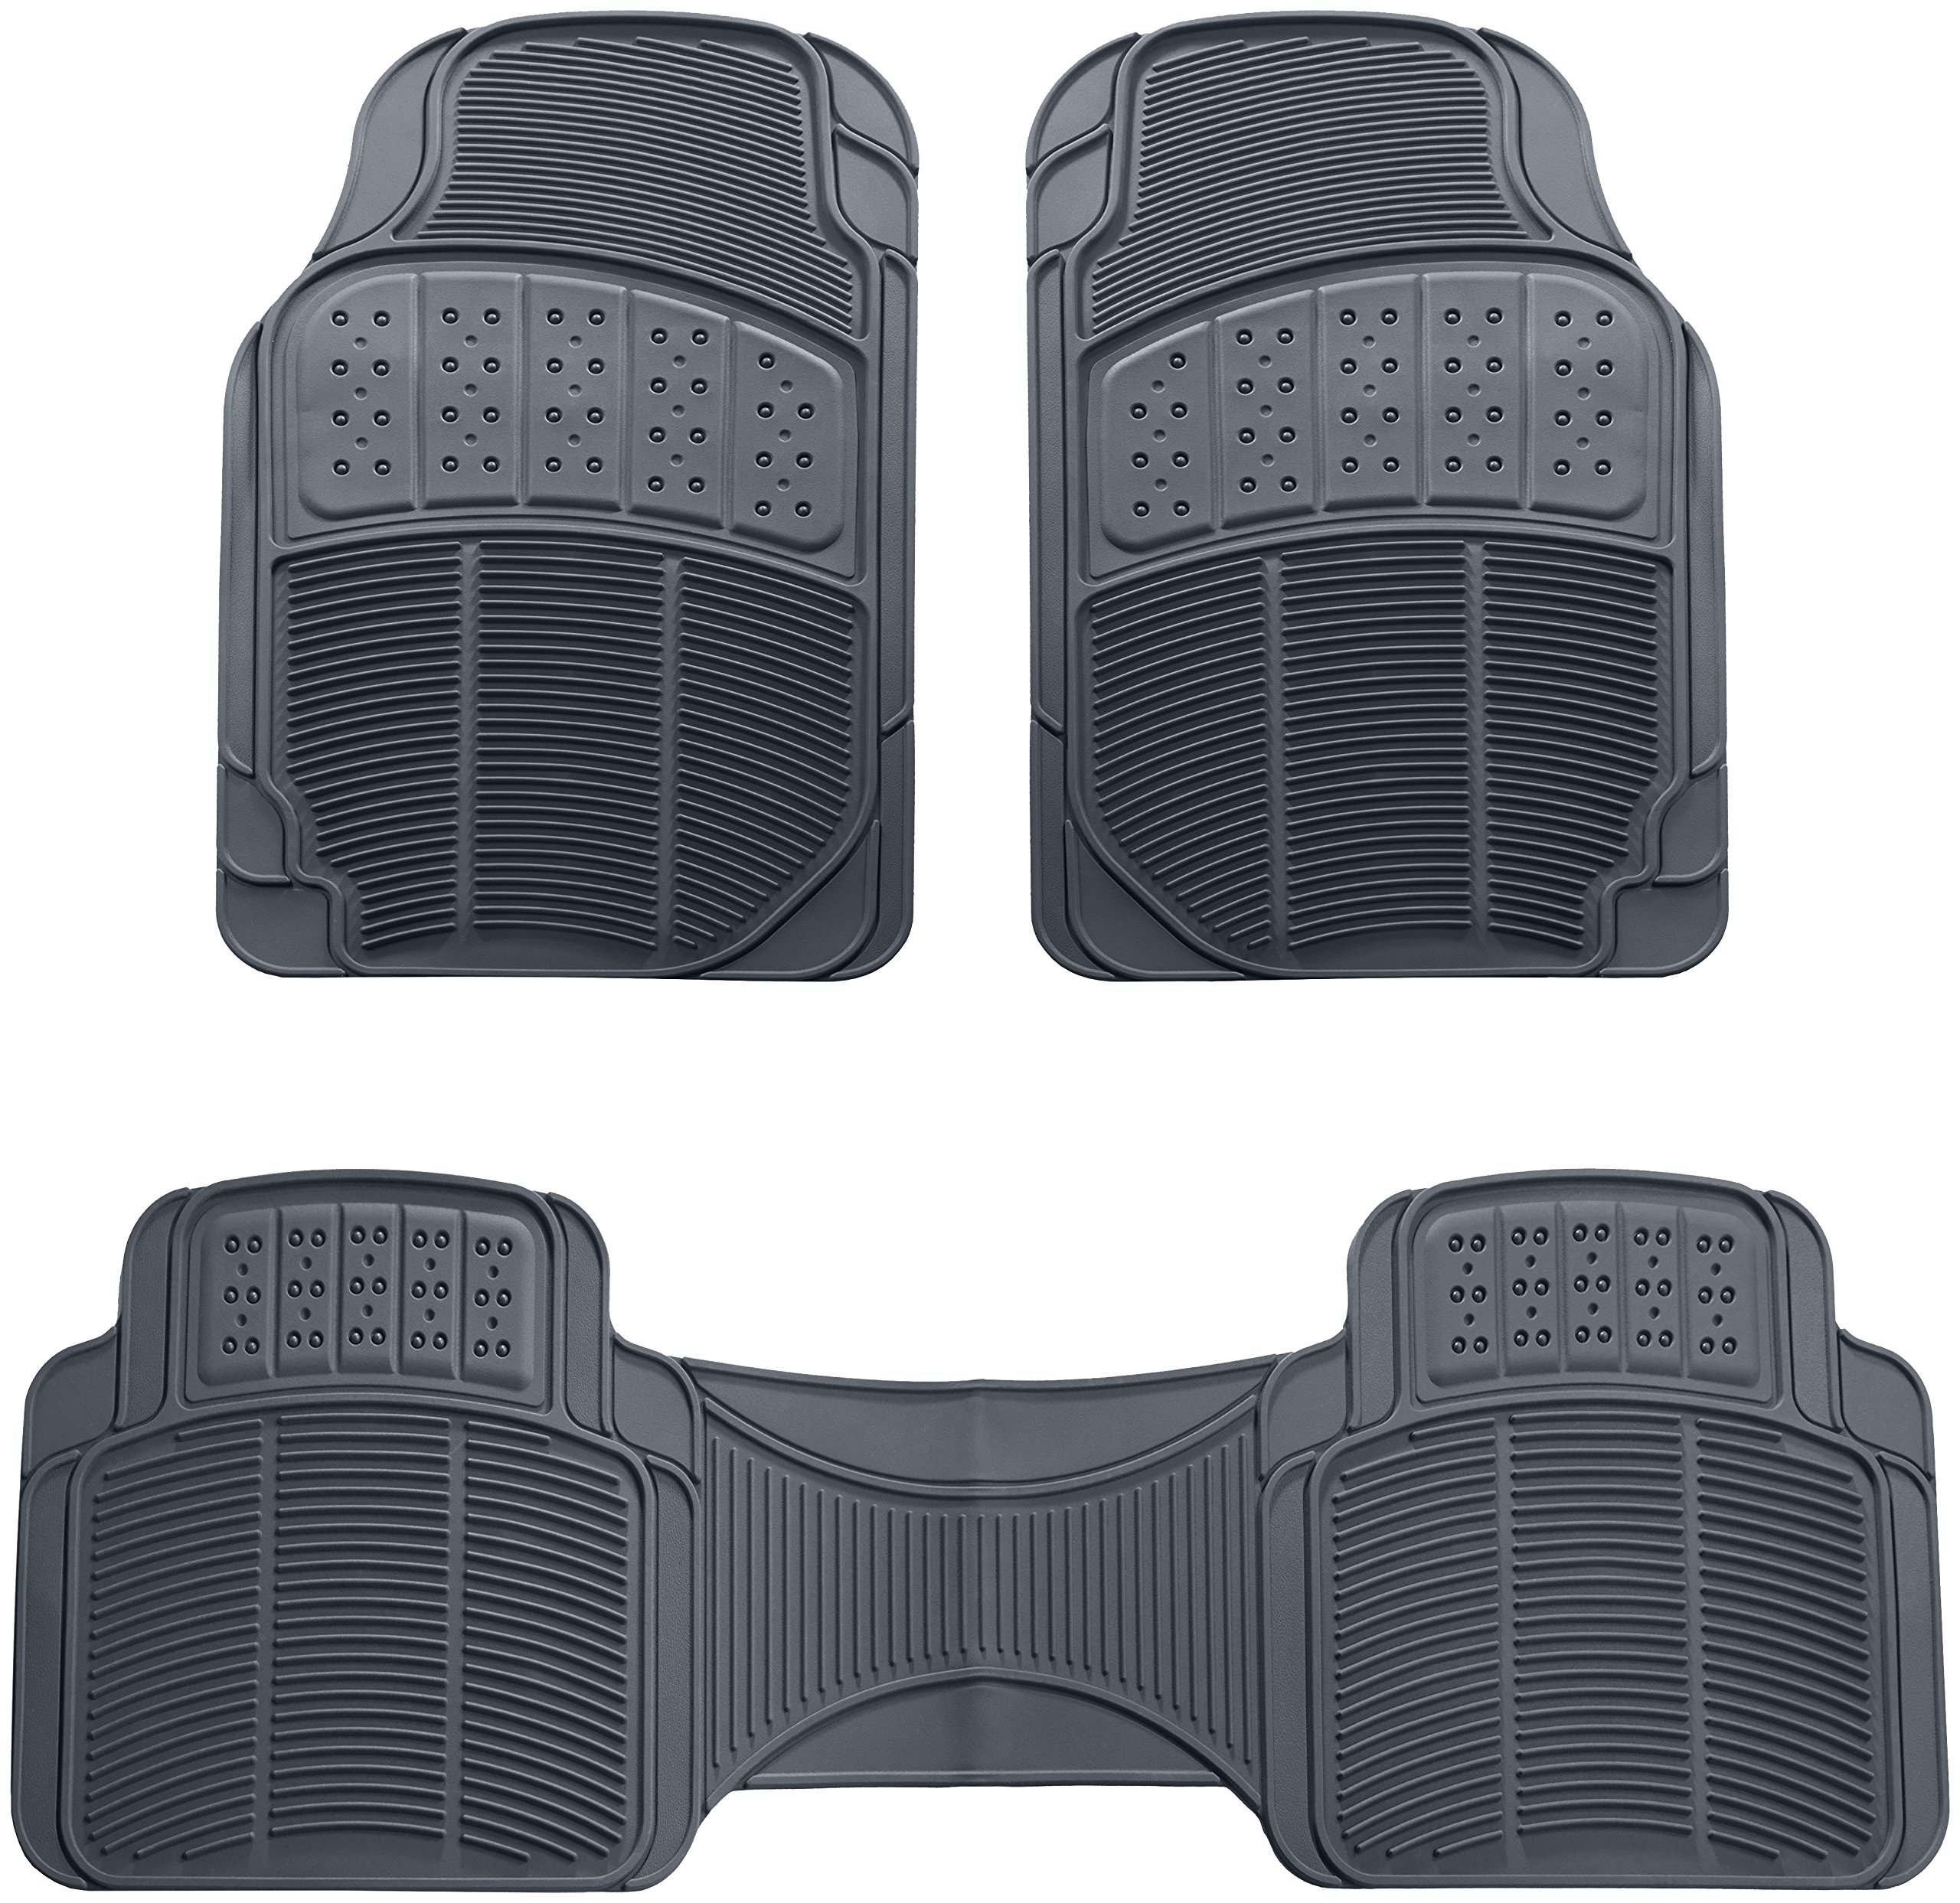 AmazonBasics 3 Piece Rubber Car Floor Mat, Grey by AmazonBasics